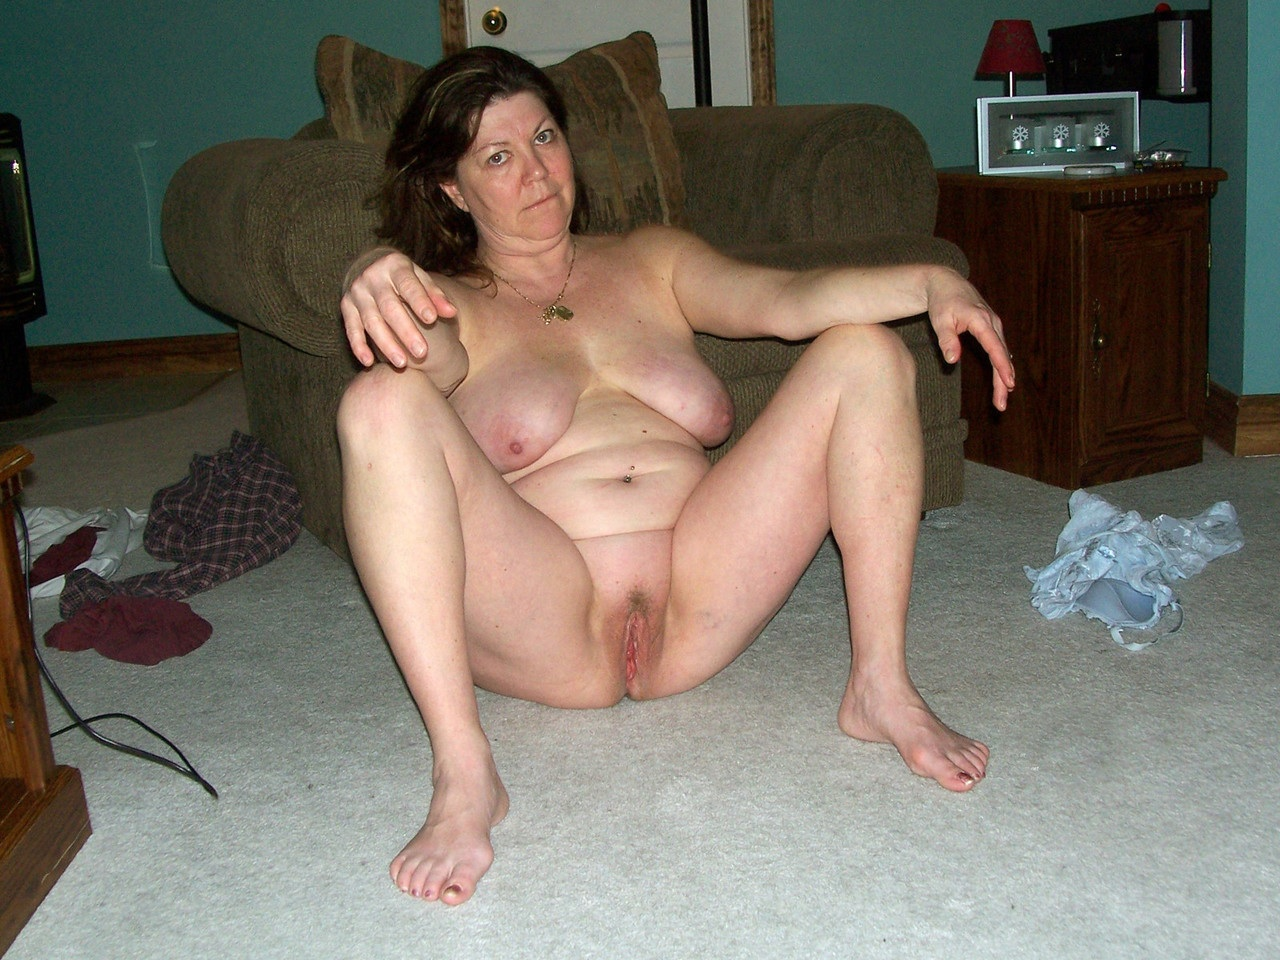 Girls masturbate herself free